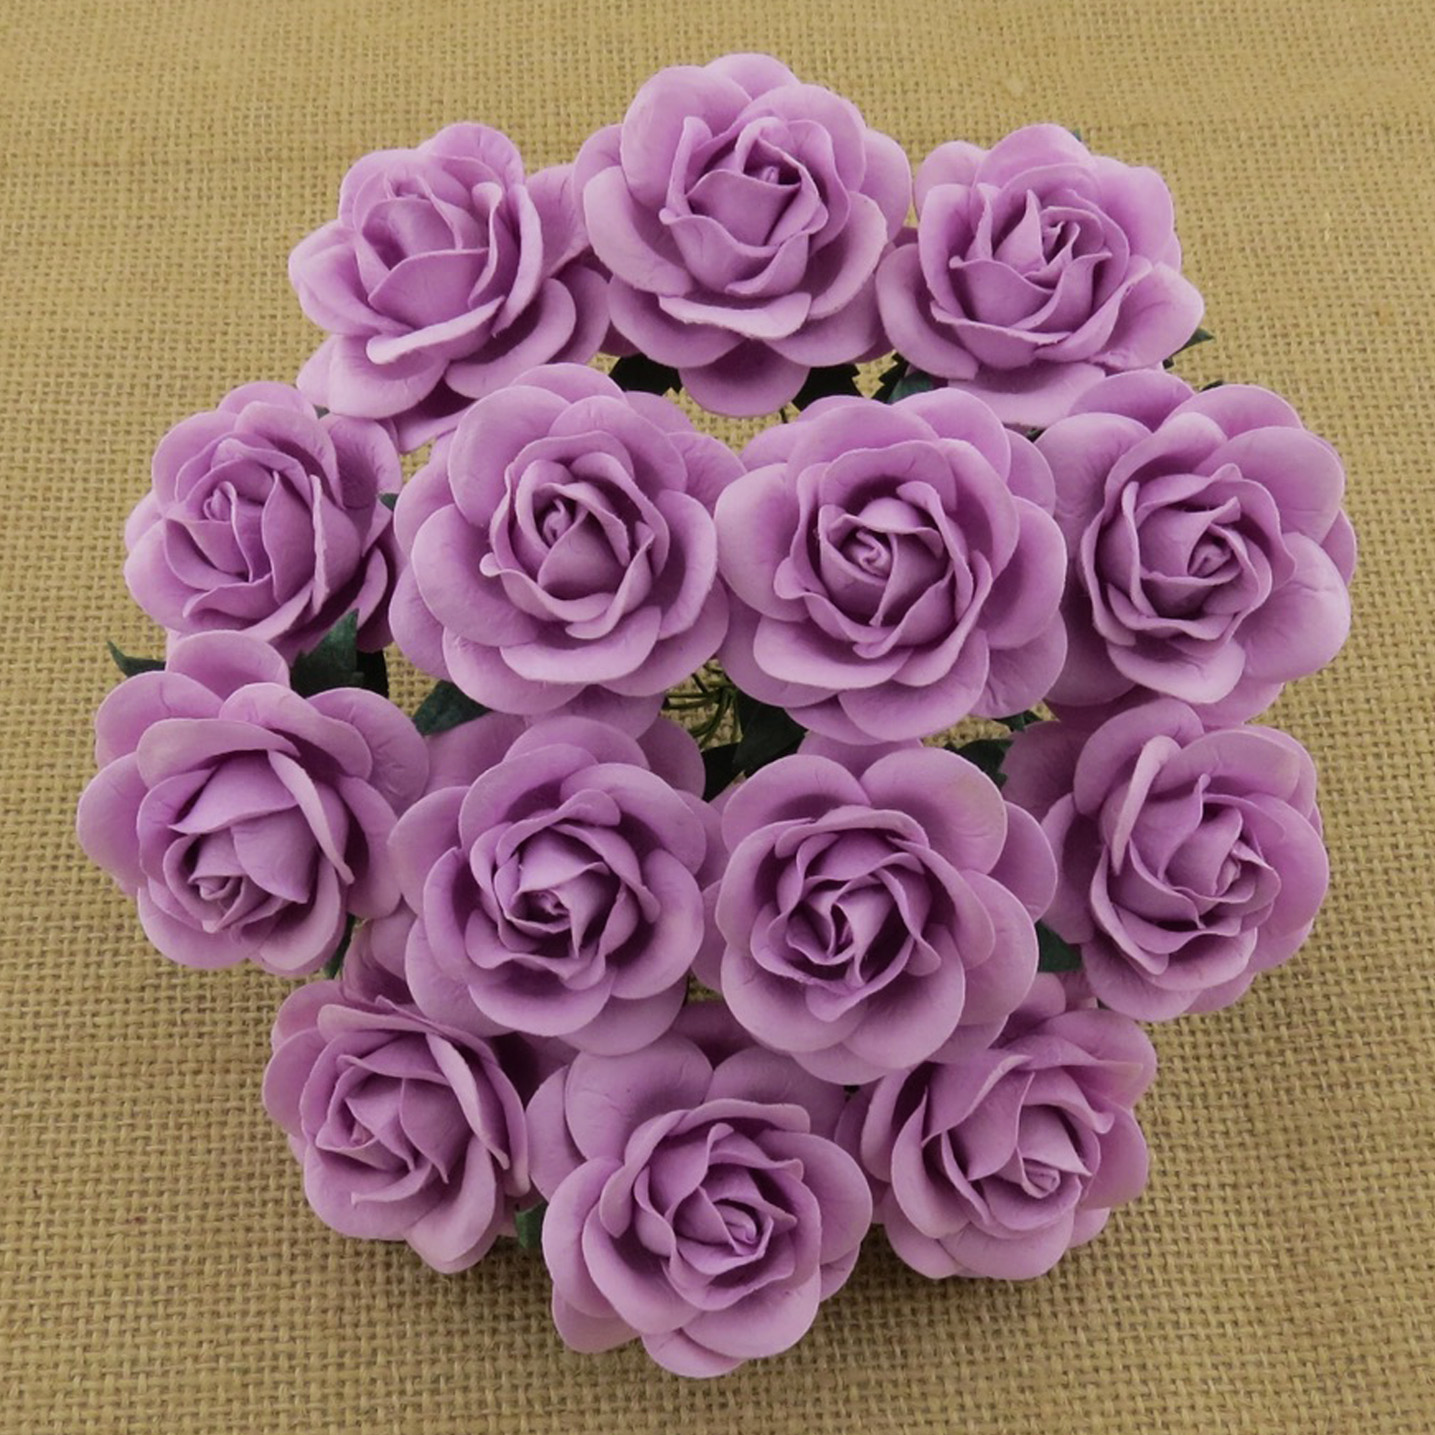 50 LILAC MULBERRY PAPER TRELLIS ROSES